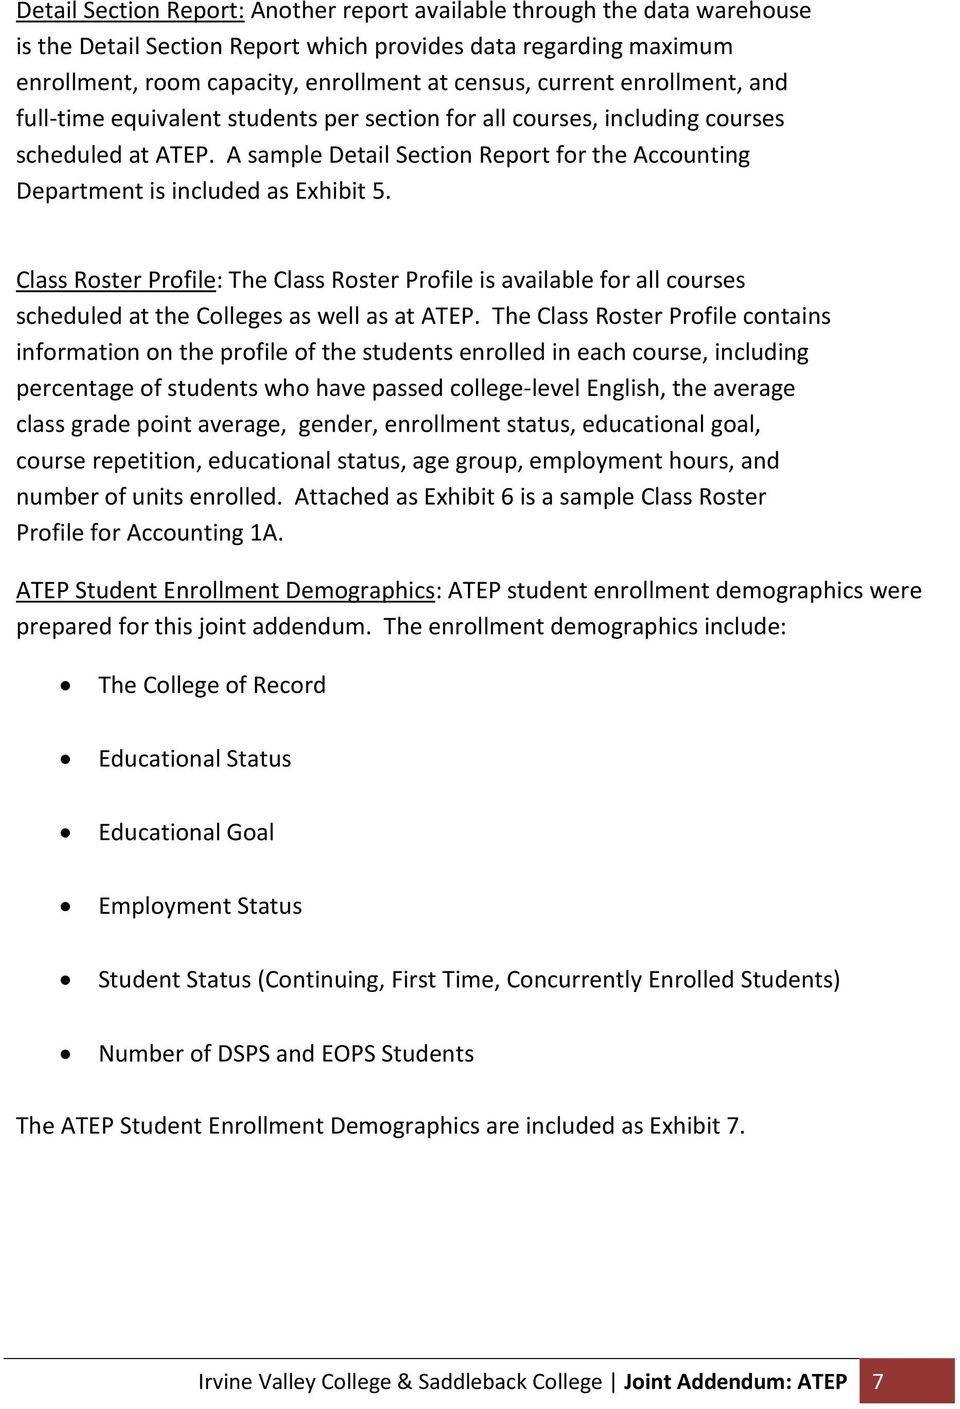 Class Roster Profile: The Class Roster Profile is available for all courses scheduled at the Colleges as well as at ATEP.